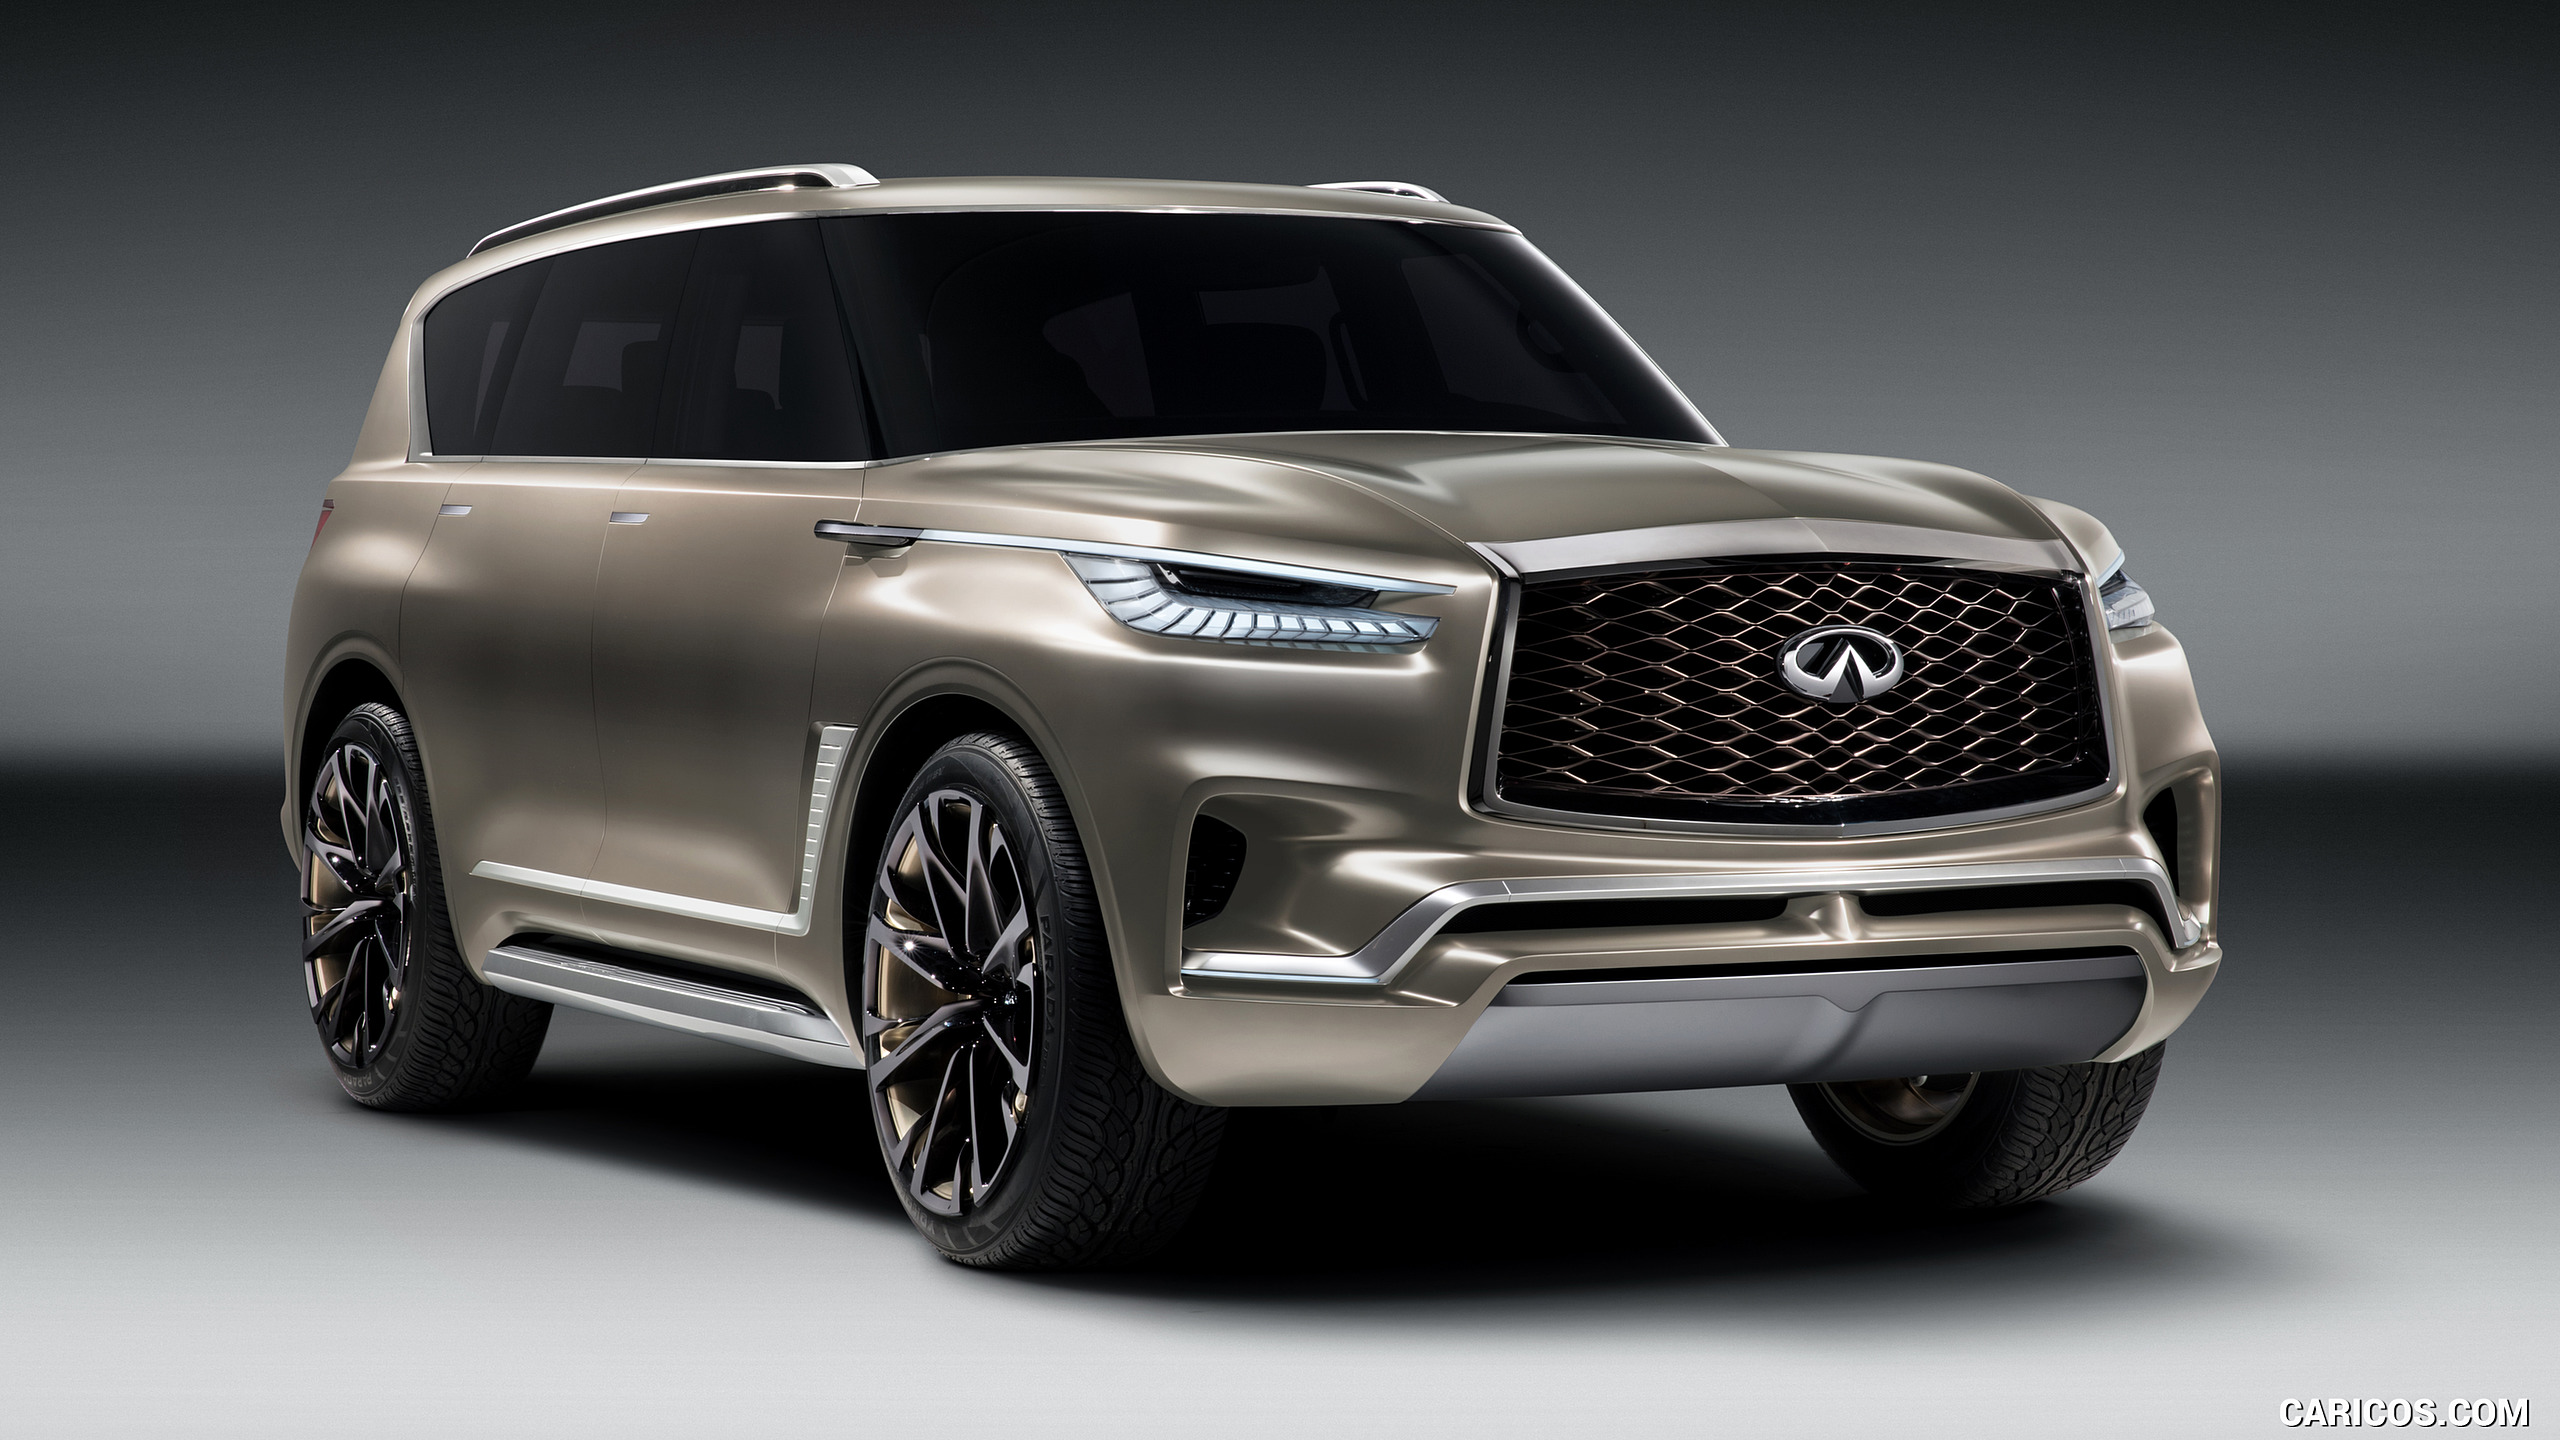 2560x1440 - Infiniti QX80 Wallpapers 23